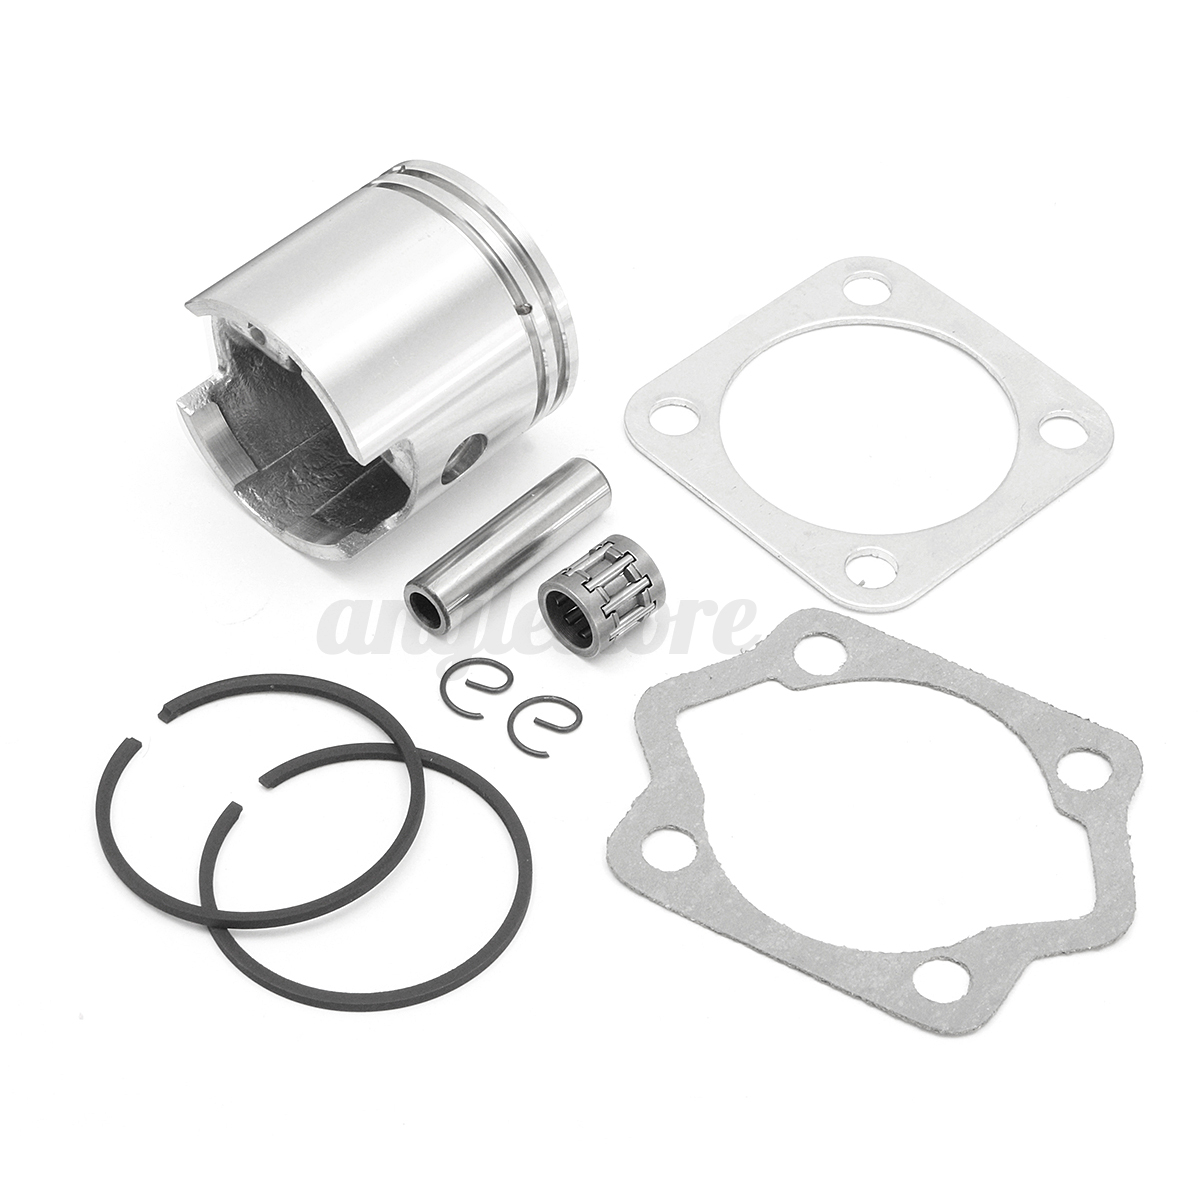 80cc engine kit instructions